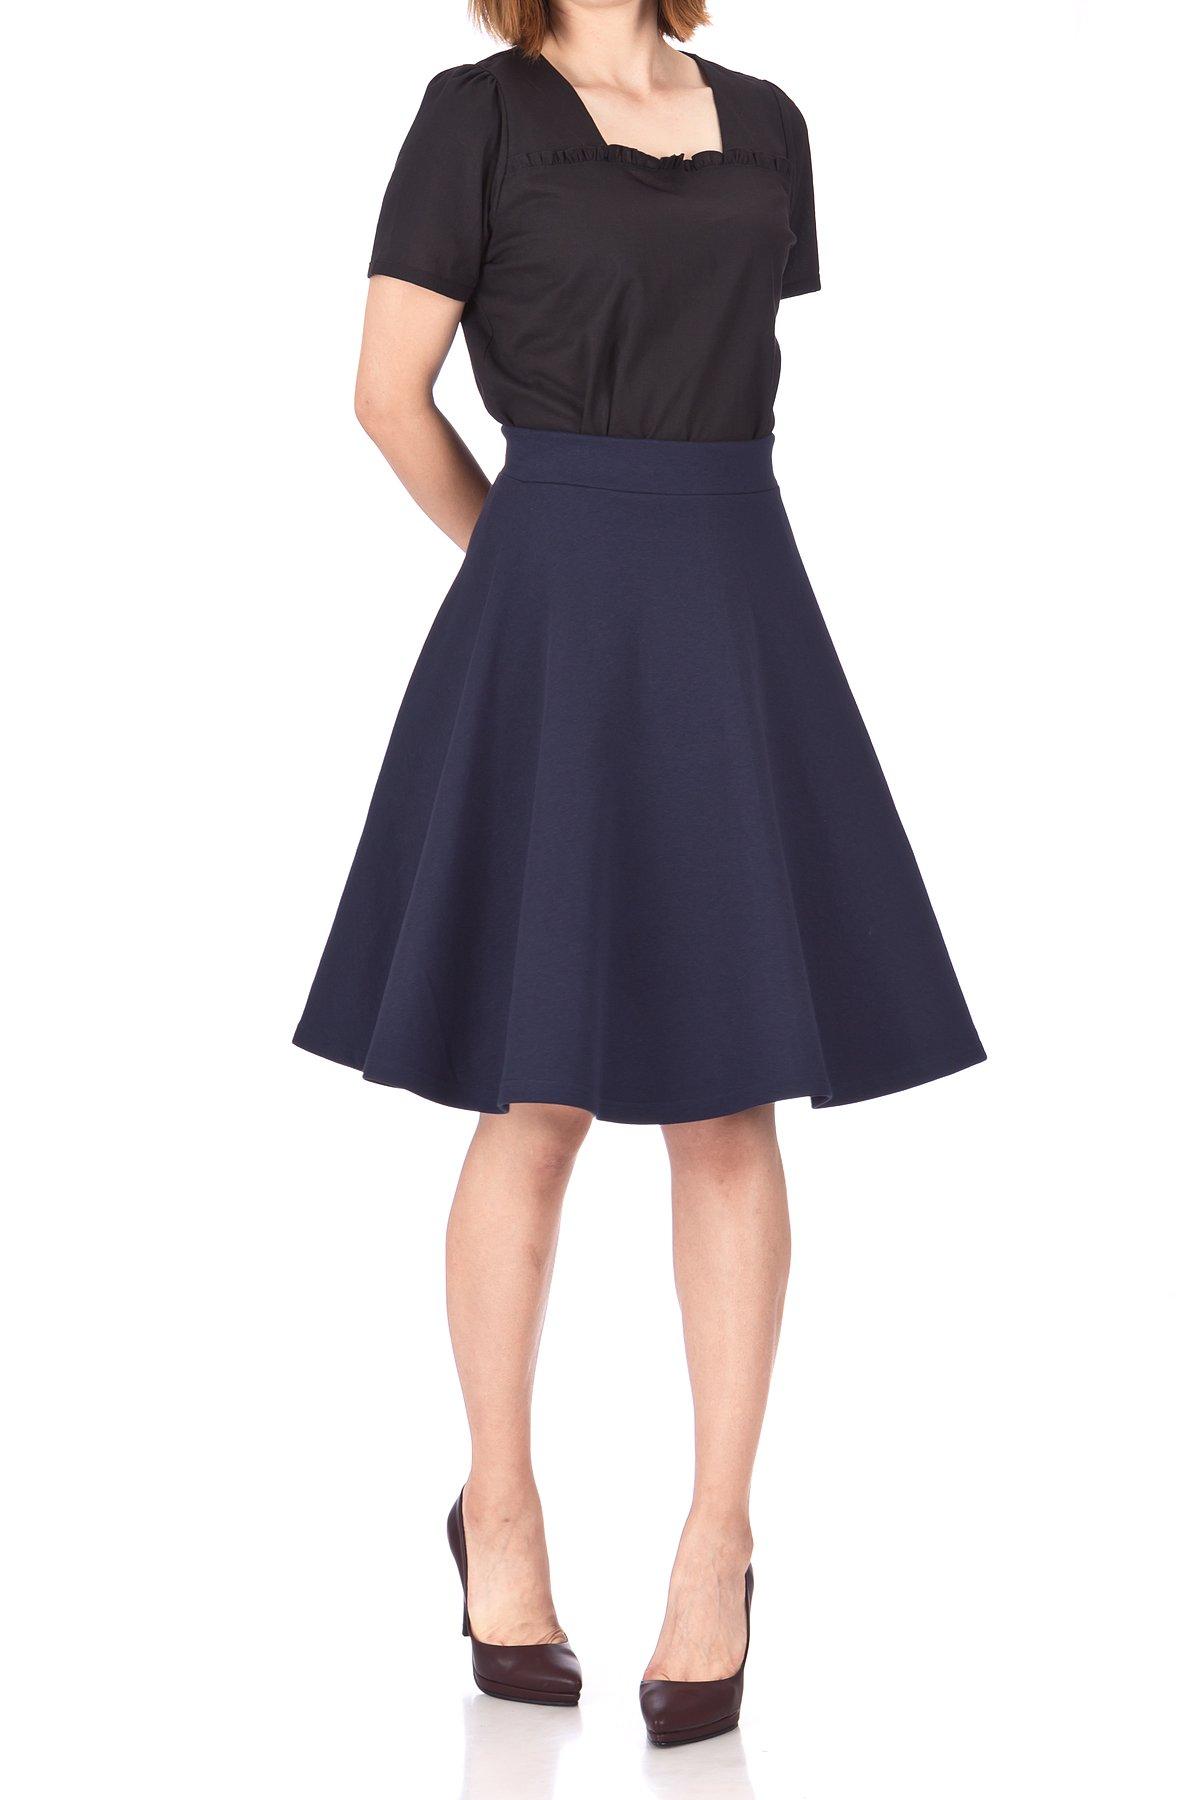 Comfy and Lovely Cotton Blend Versatile Casual Office High Waist A line Full Flared Swing Circle Skater Knee Length Skirt Navy 01